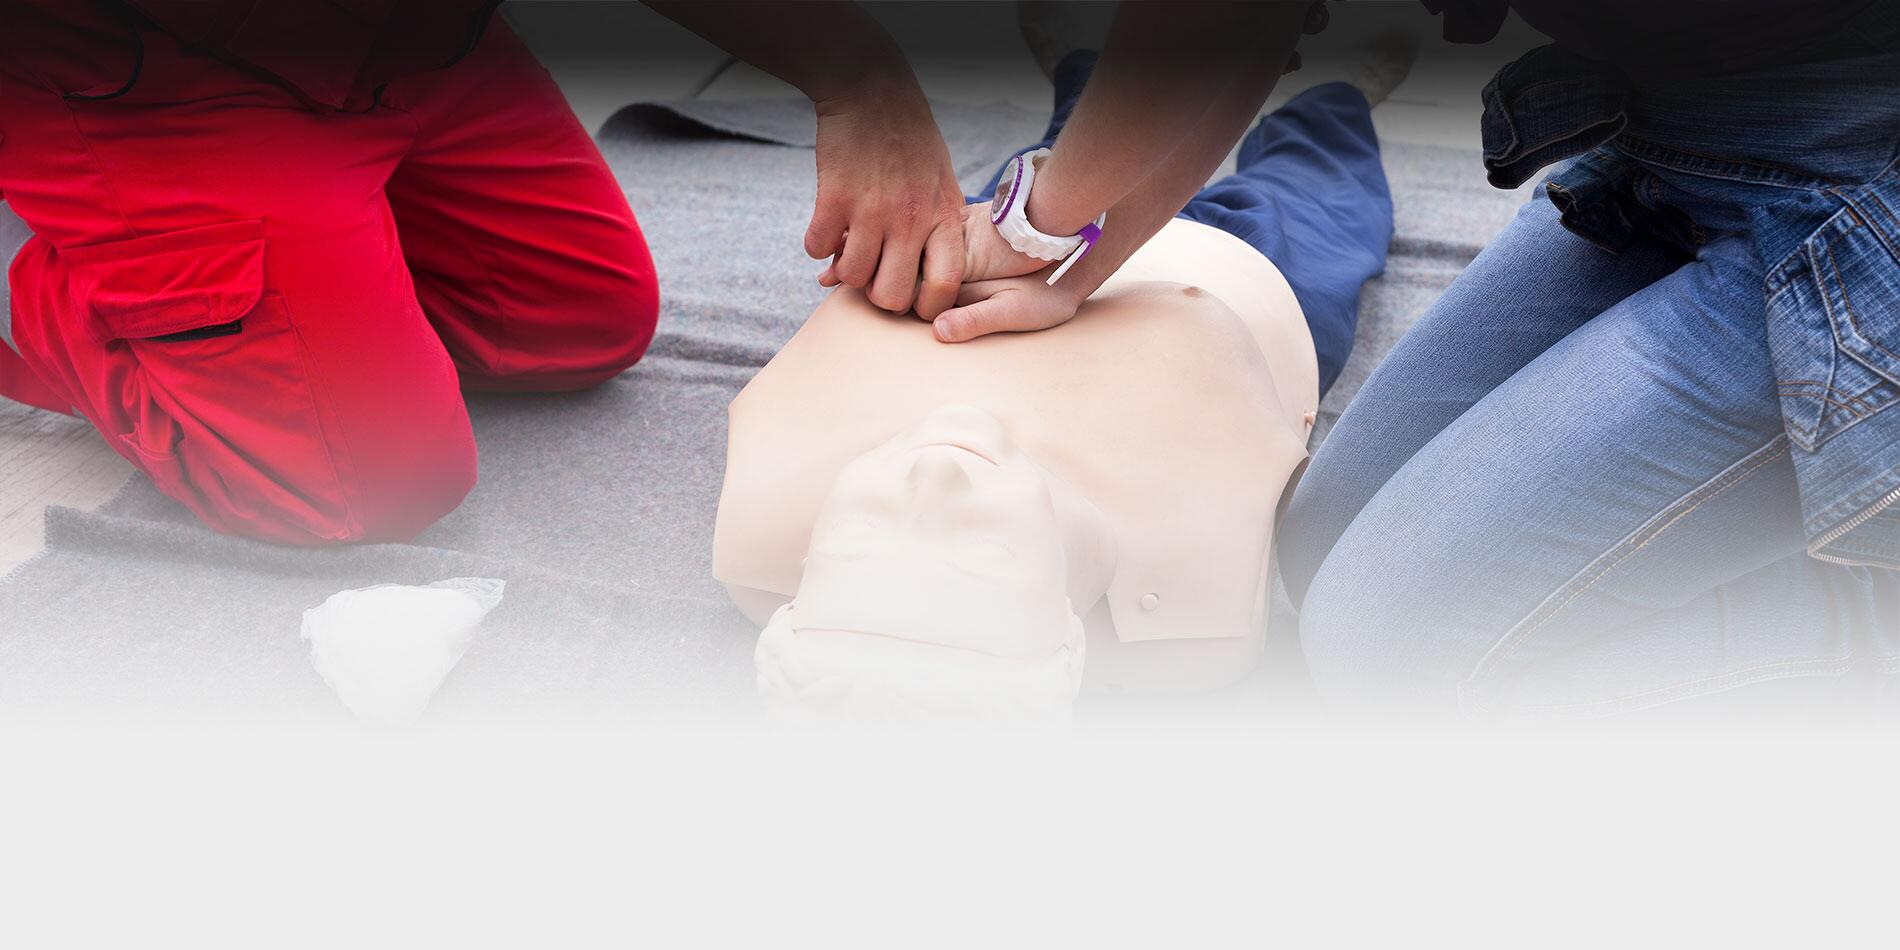 Close up photo of two people practicing CPR on a dummy.